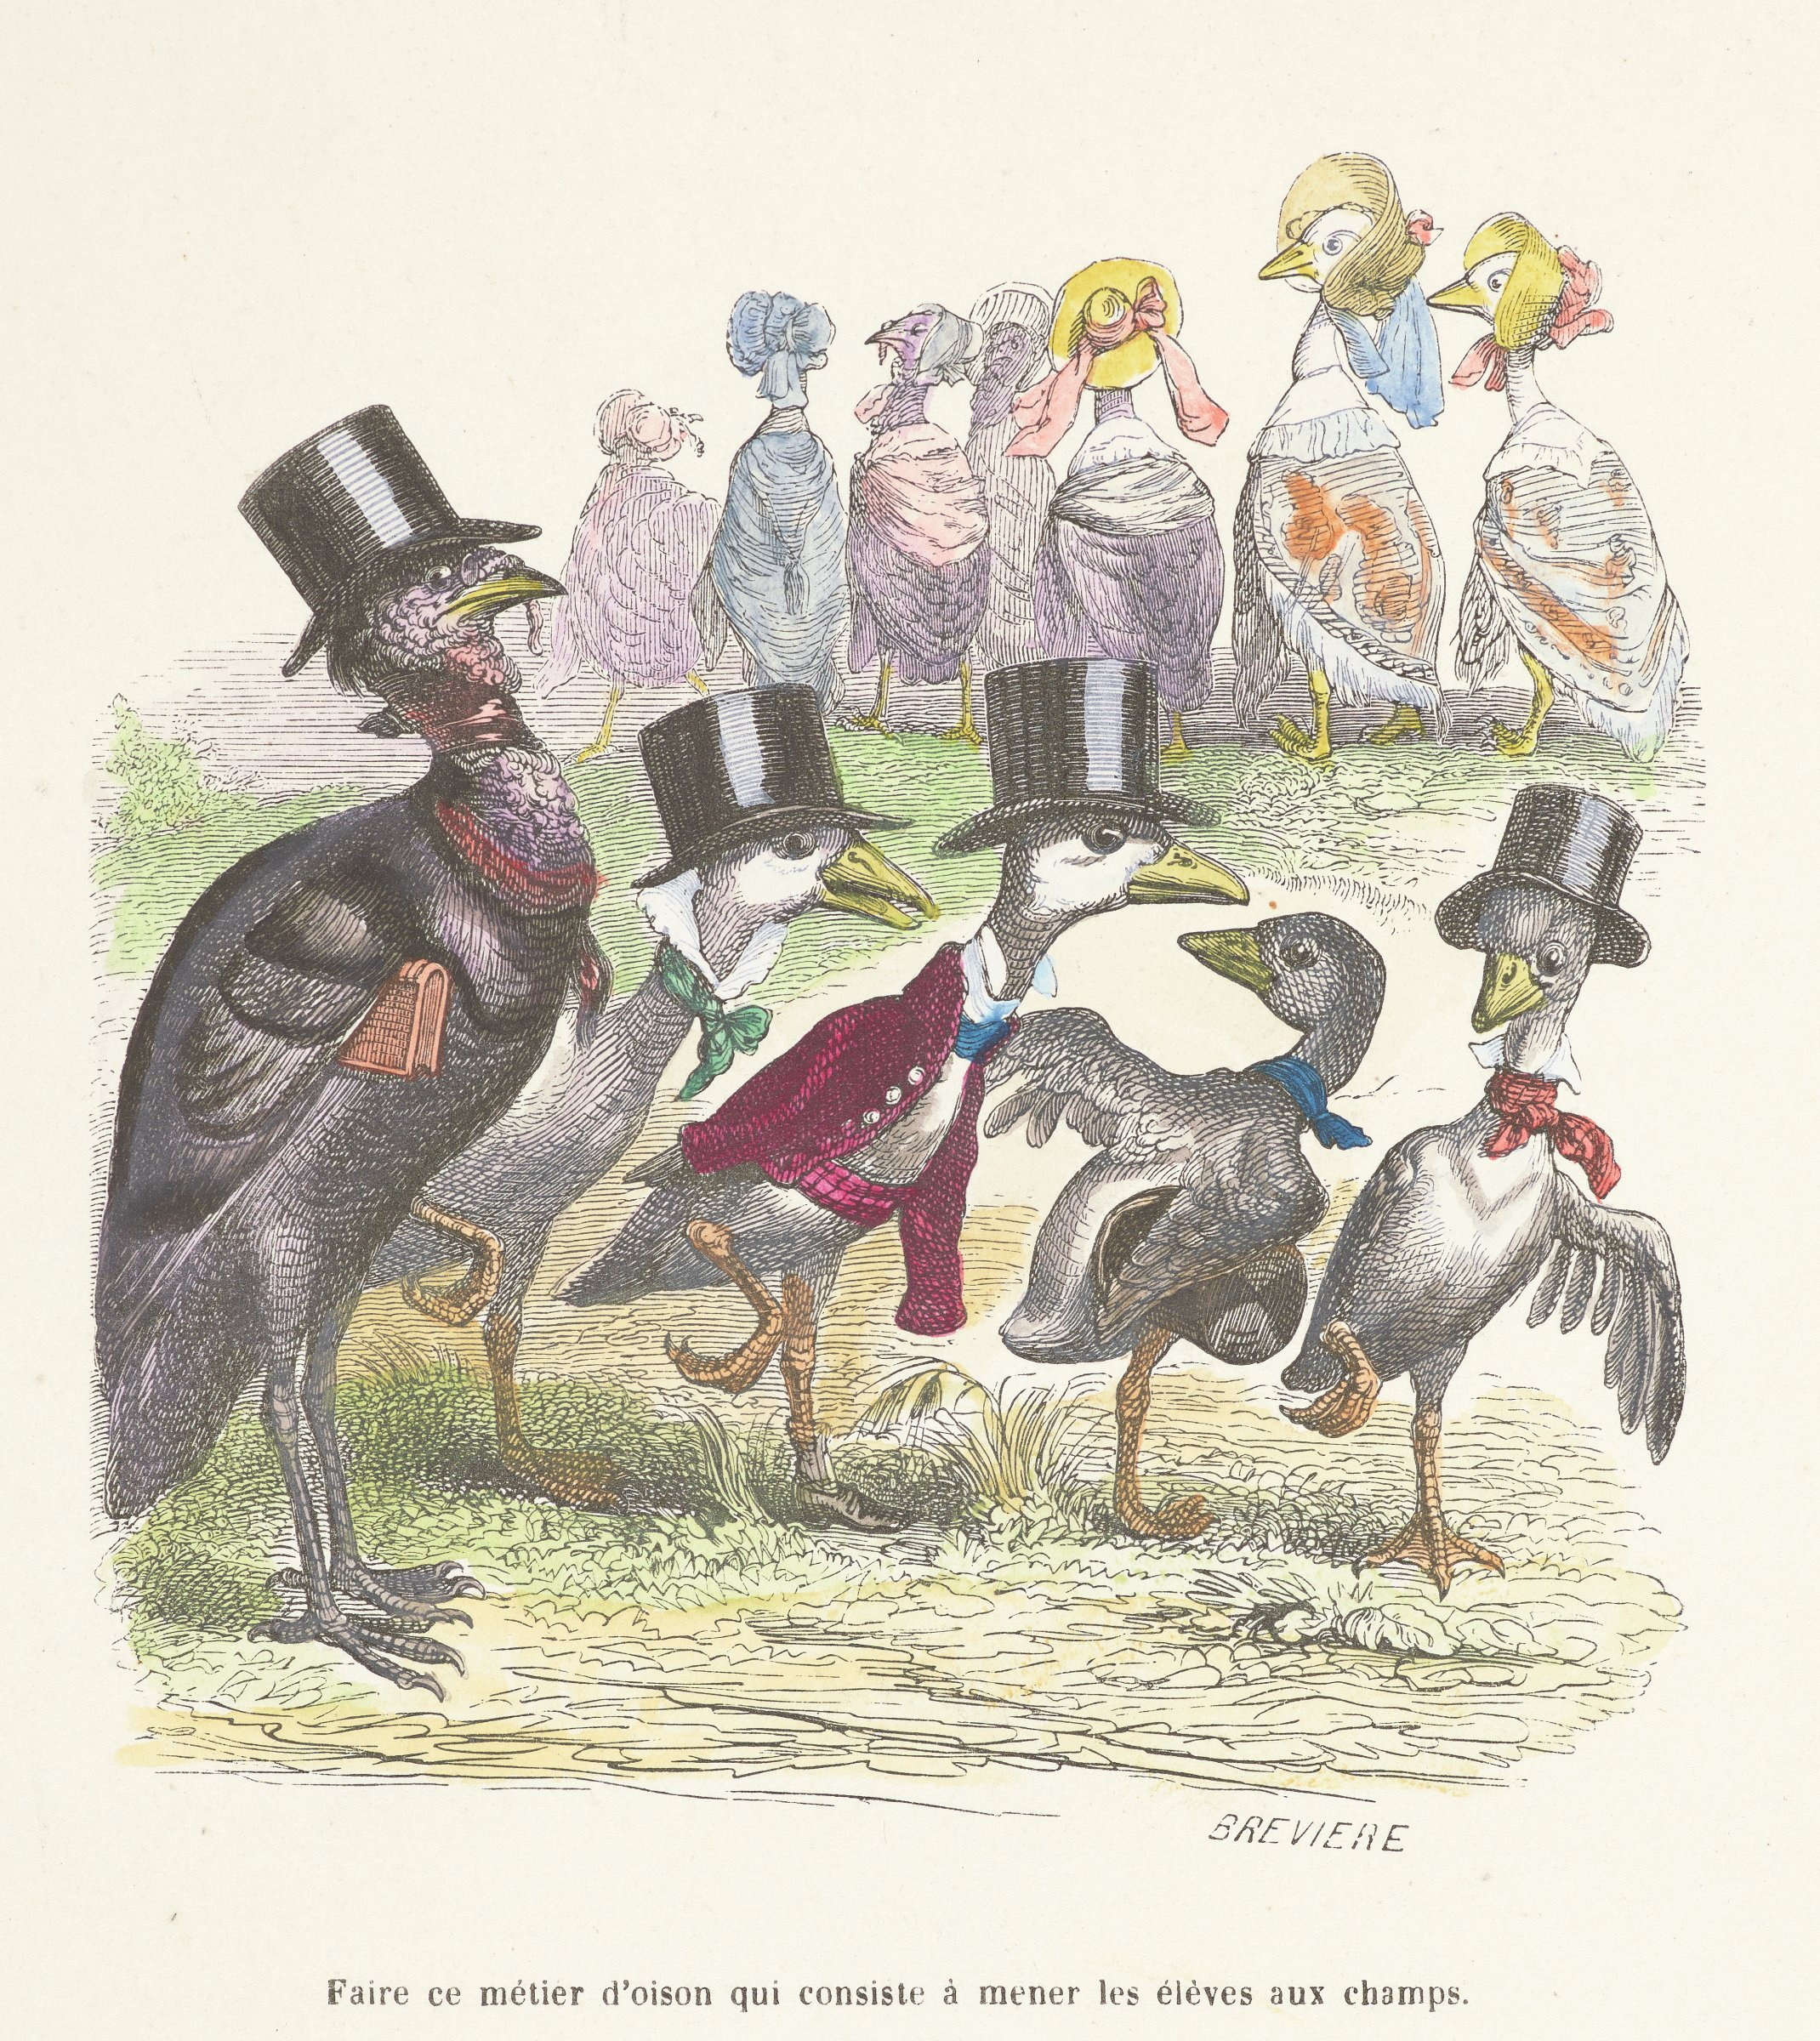 Various types of birds are personified. In the foreground, an older turkey in a top hat stands beside a line of young birds in top hats. In the background is a line of birds in bonnets and shaws.